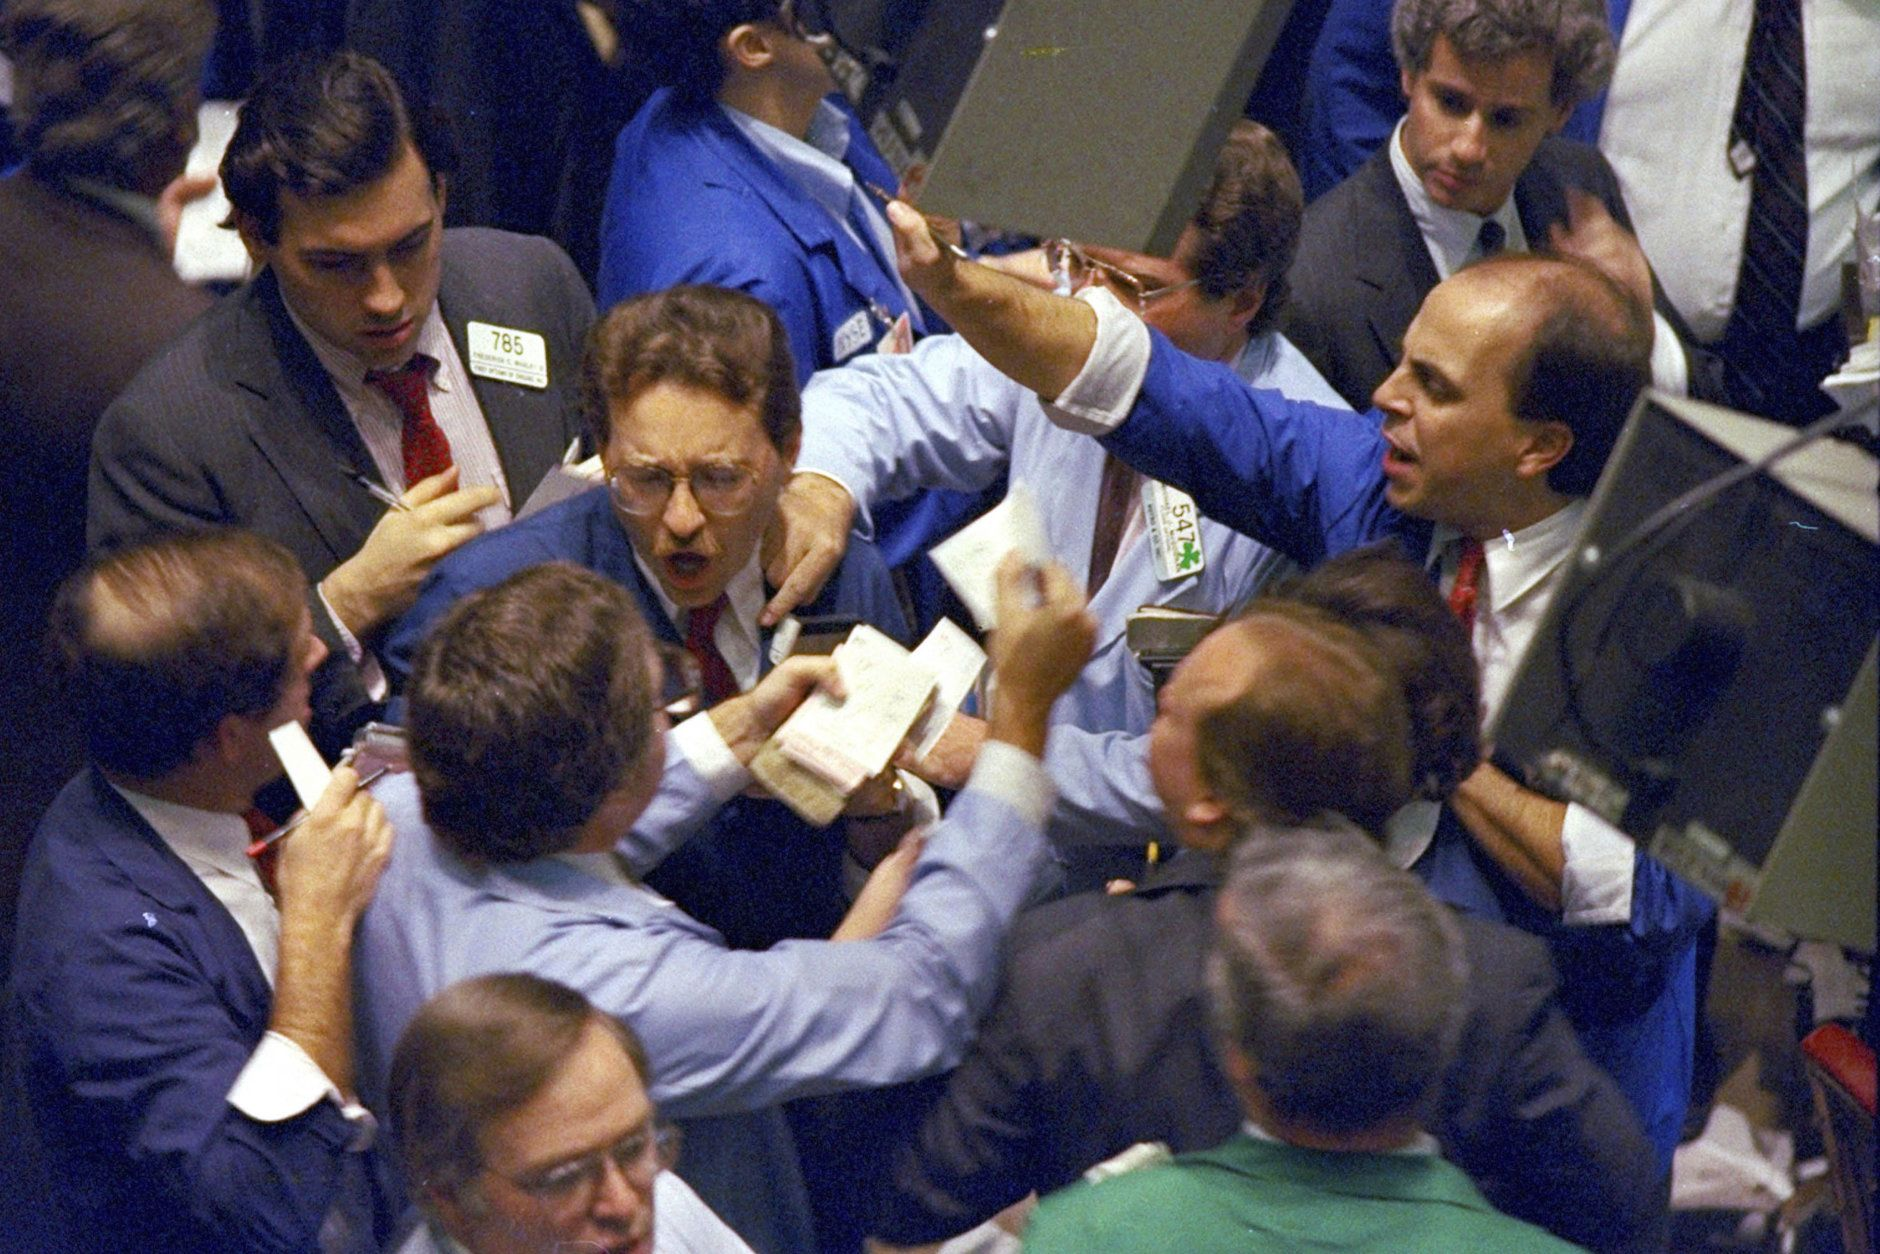 """FILE - In this Oct. 19, 1987, file photo, traders work on the floor of the New York Stock Exchange. What if the stock market plunged 20 percent tomorrow? The question may seem absurd when the market is in the midst of one of its calmest runs in history and at record highs. But it's what investors had to deal with 30 years ago, when """"Black Monday"""" blasted stocks on Oct. 19, 1987. (AP Photo/Peter Morgan, File)"""